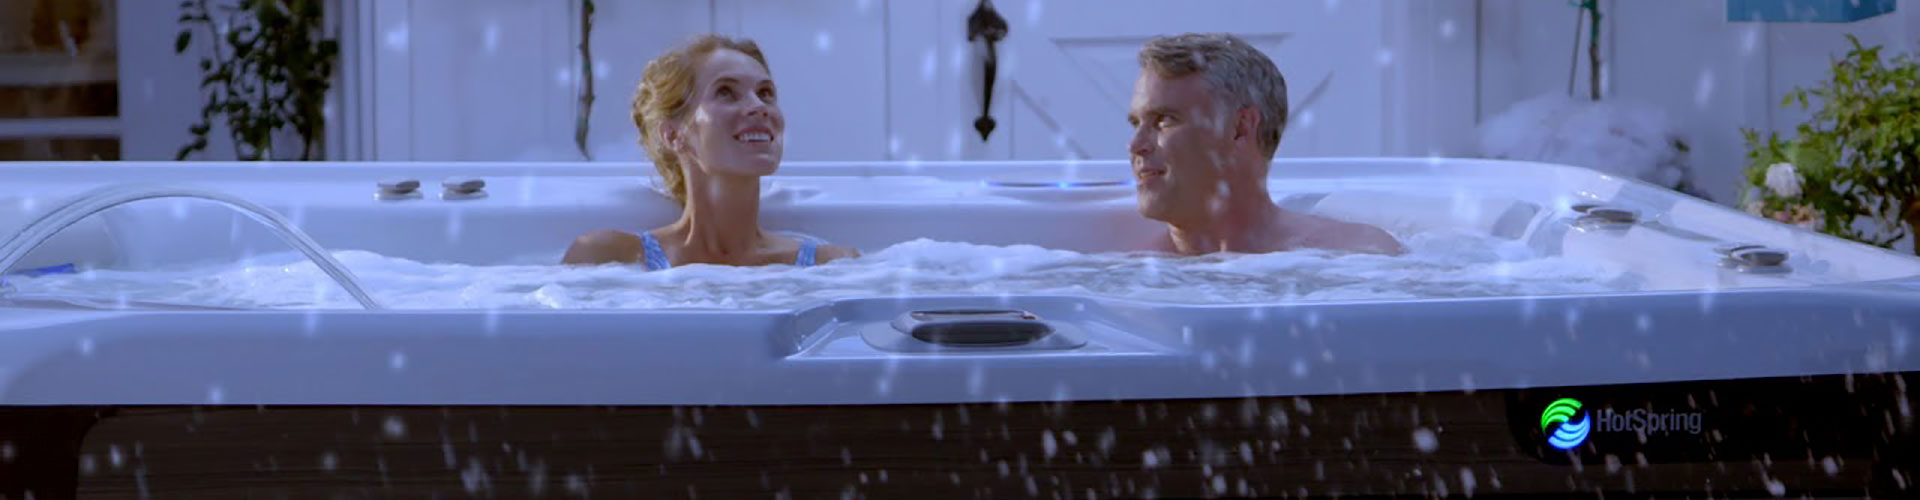 Top Features of the Perfect Backyard Spa, Hot Tub Prices Des Moines